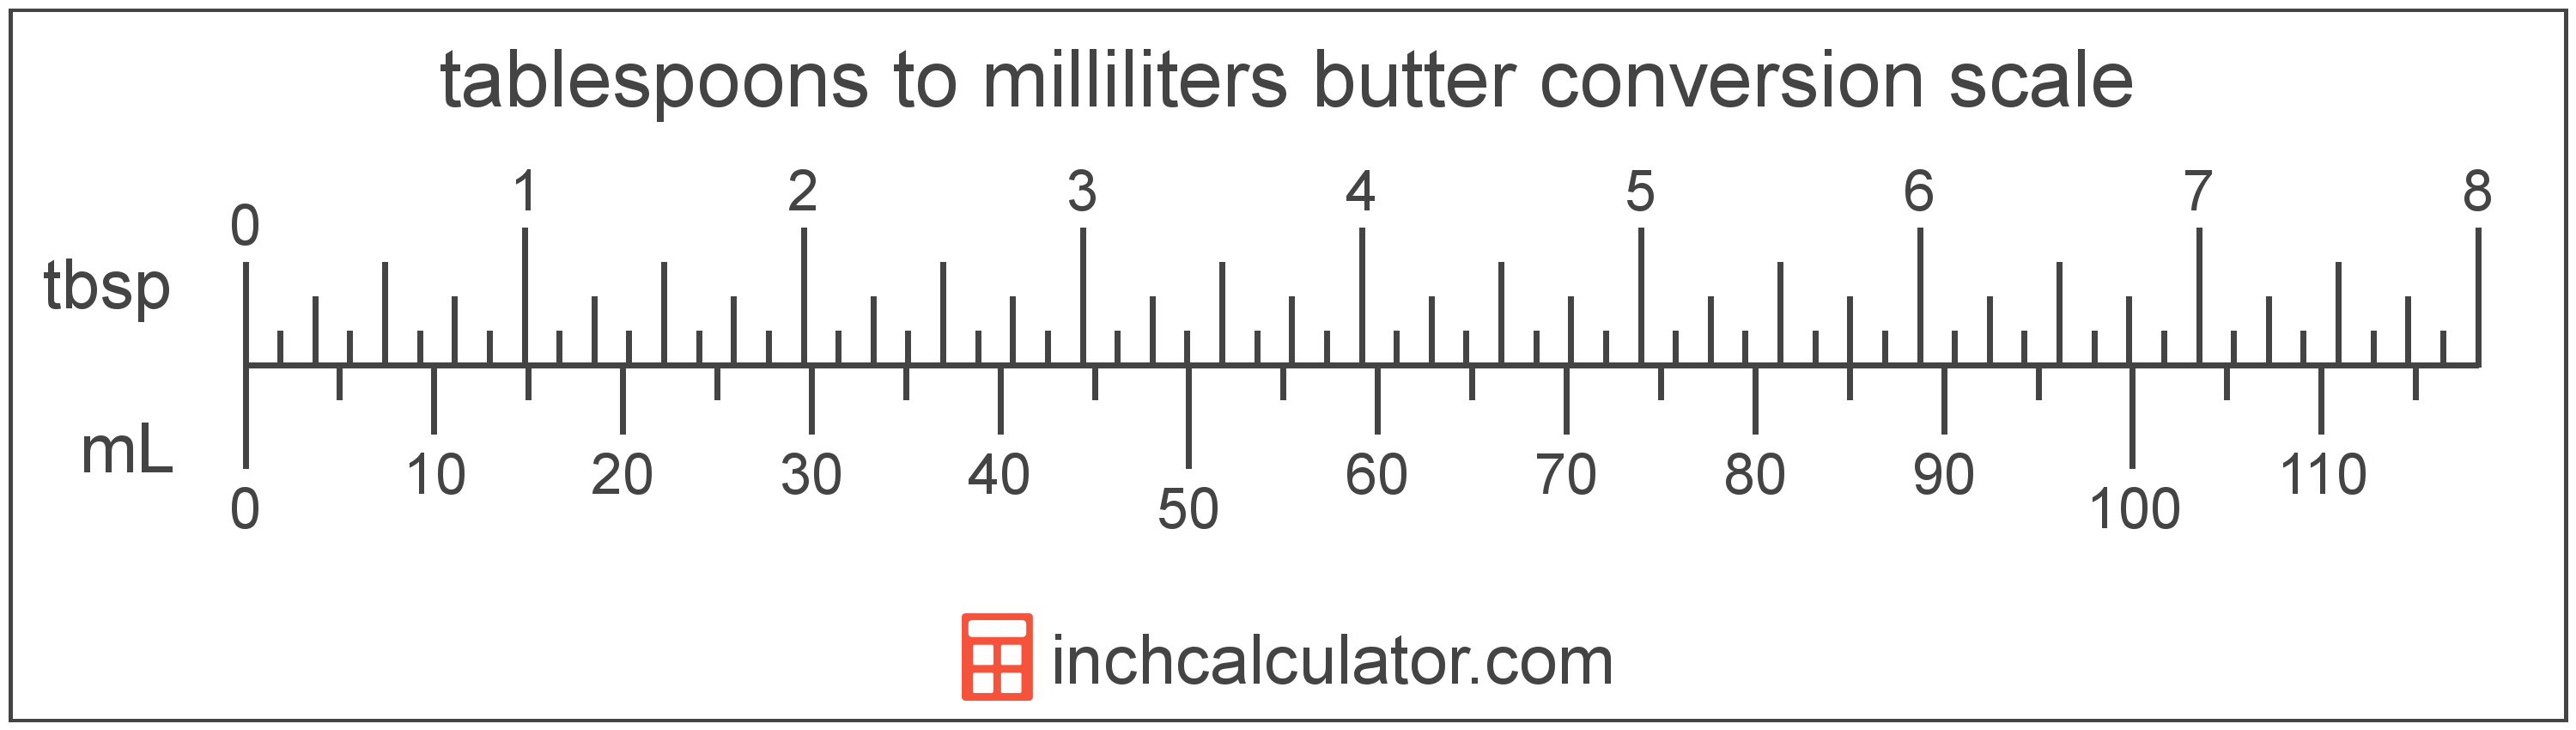 conversion scale showing tablespoons and equivalent milliliters butter values